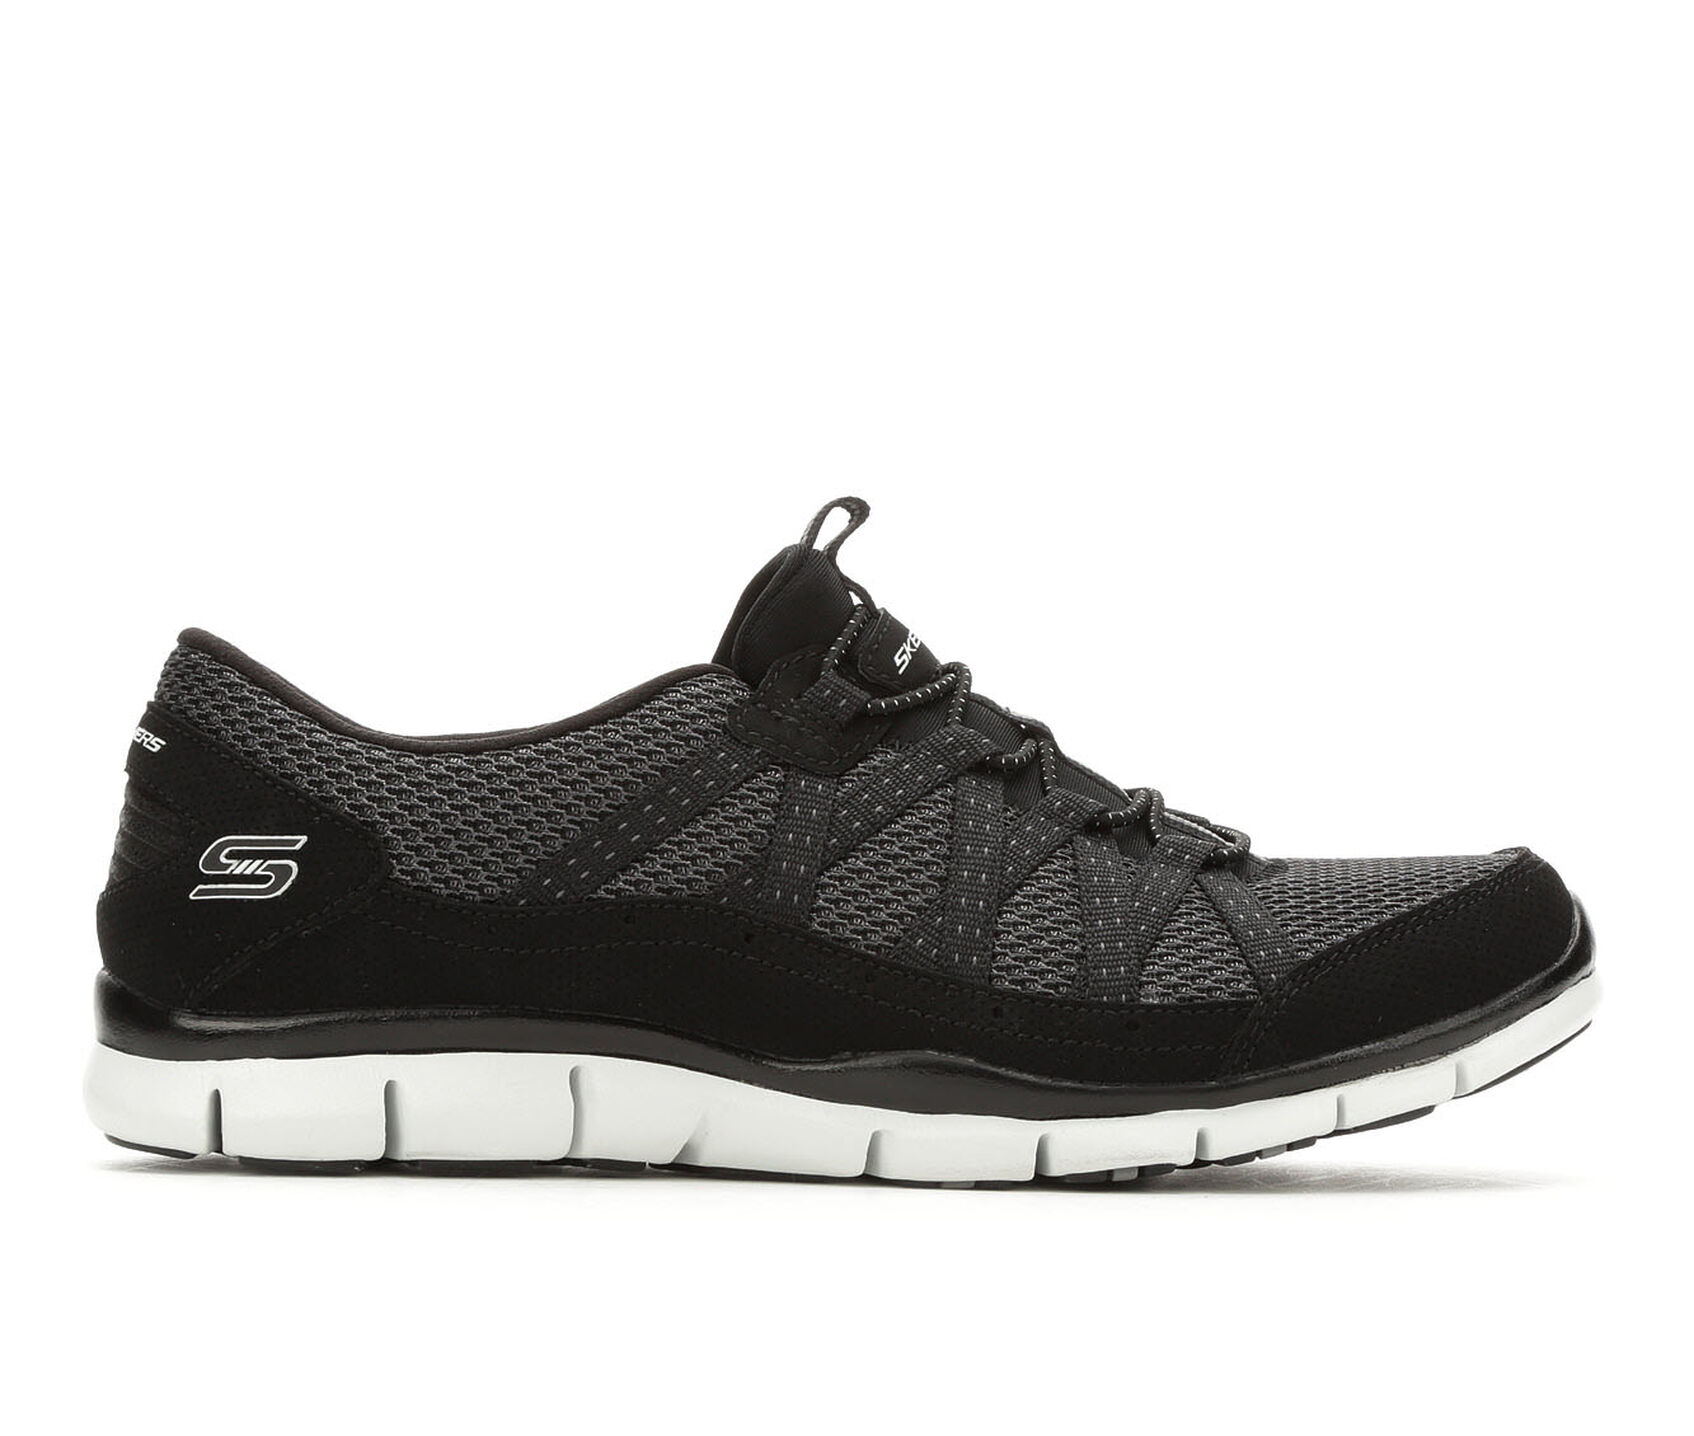 terrific value new products for good reputation Women's Skechers Strolling 22823 Slip-On Sneakers